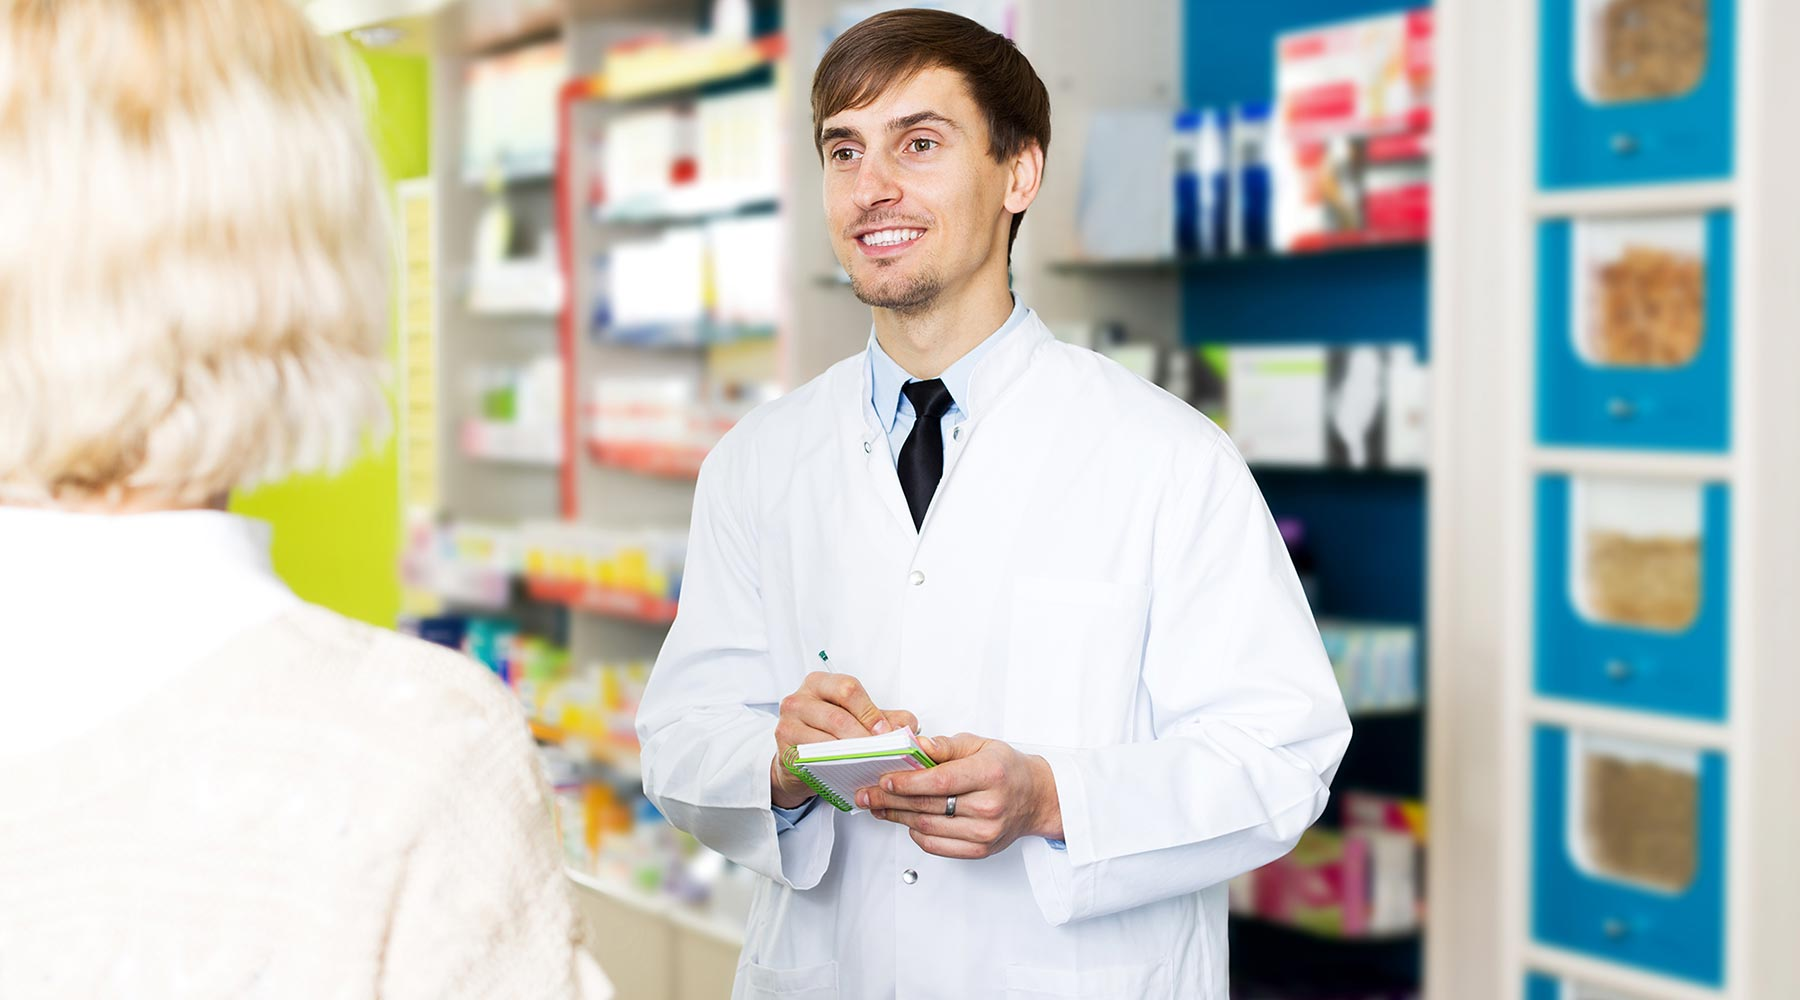 5 Benefits to a Career as a Pharmacy Technician